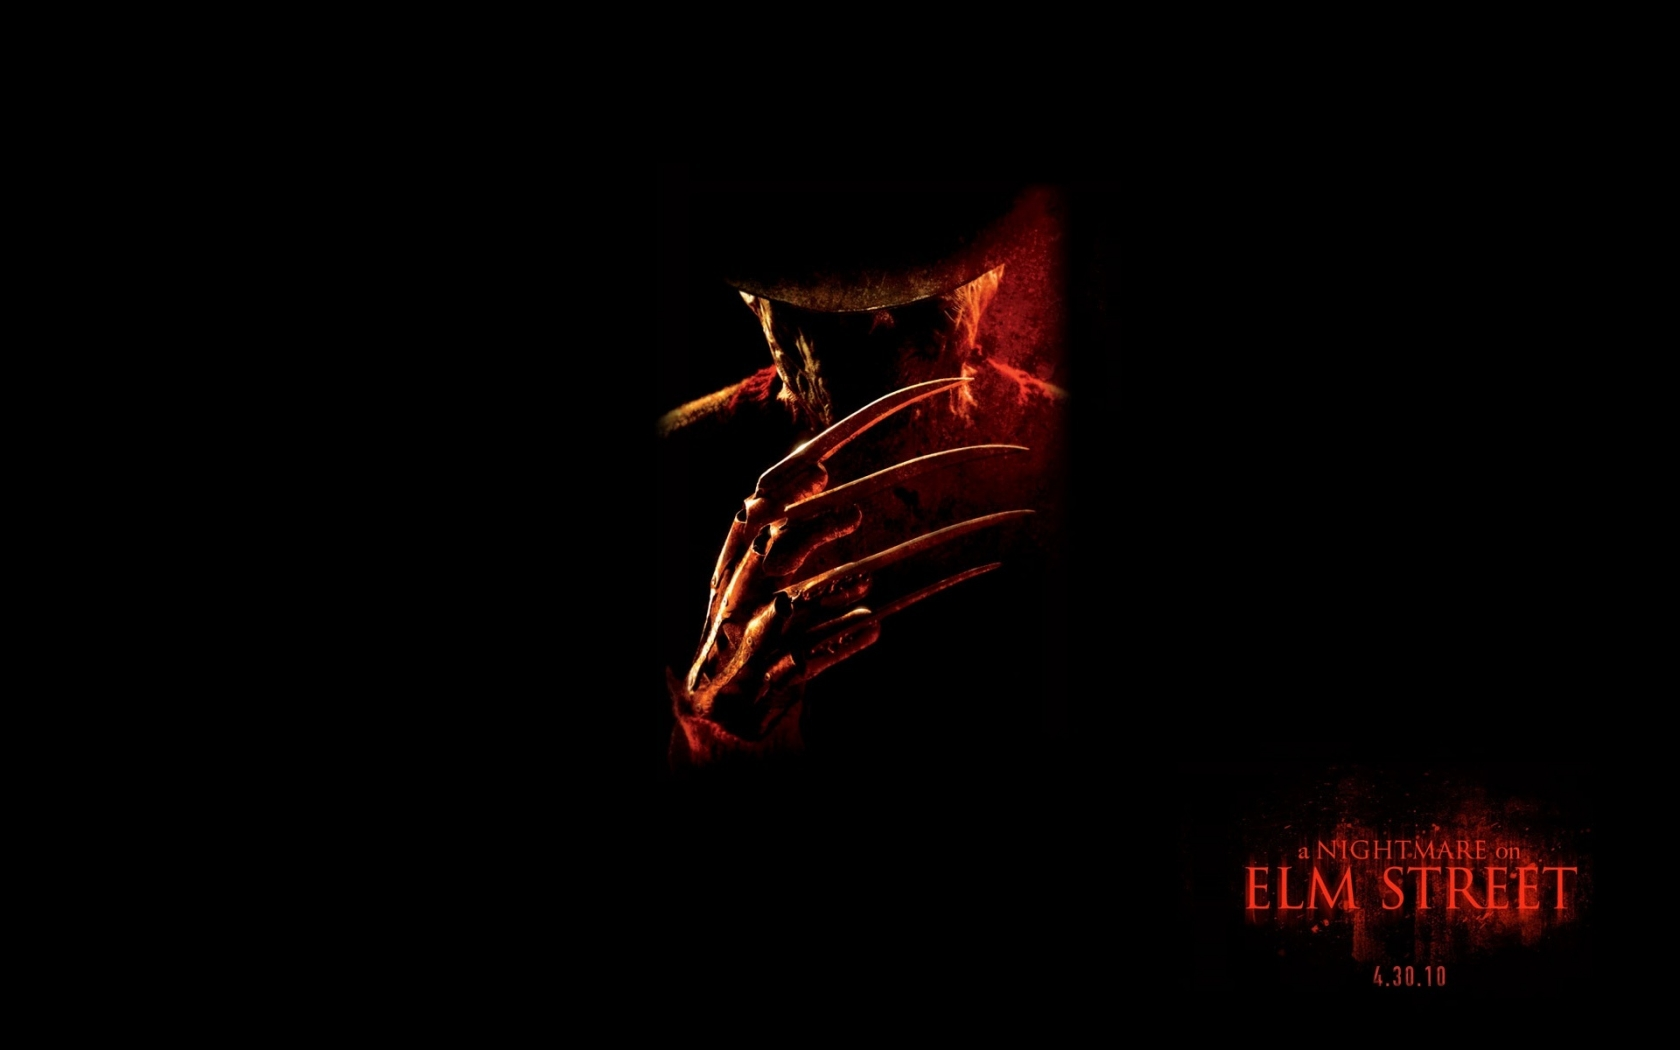 A Nightmare on Elm Street 2010 for 1680 x 1050 widescreen resolution